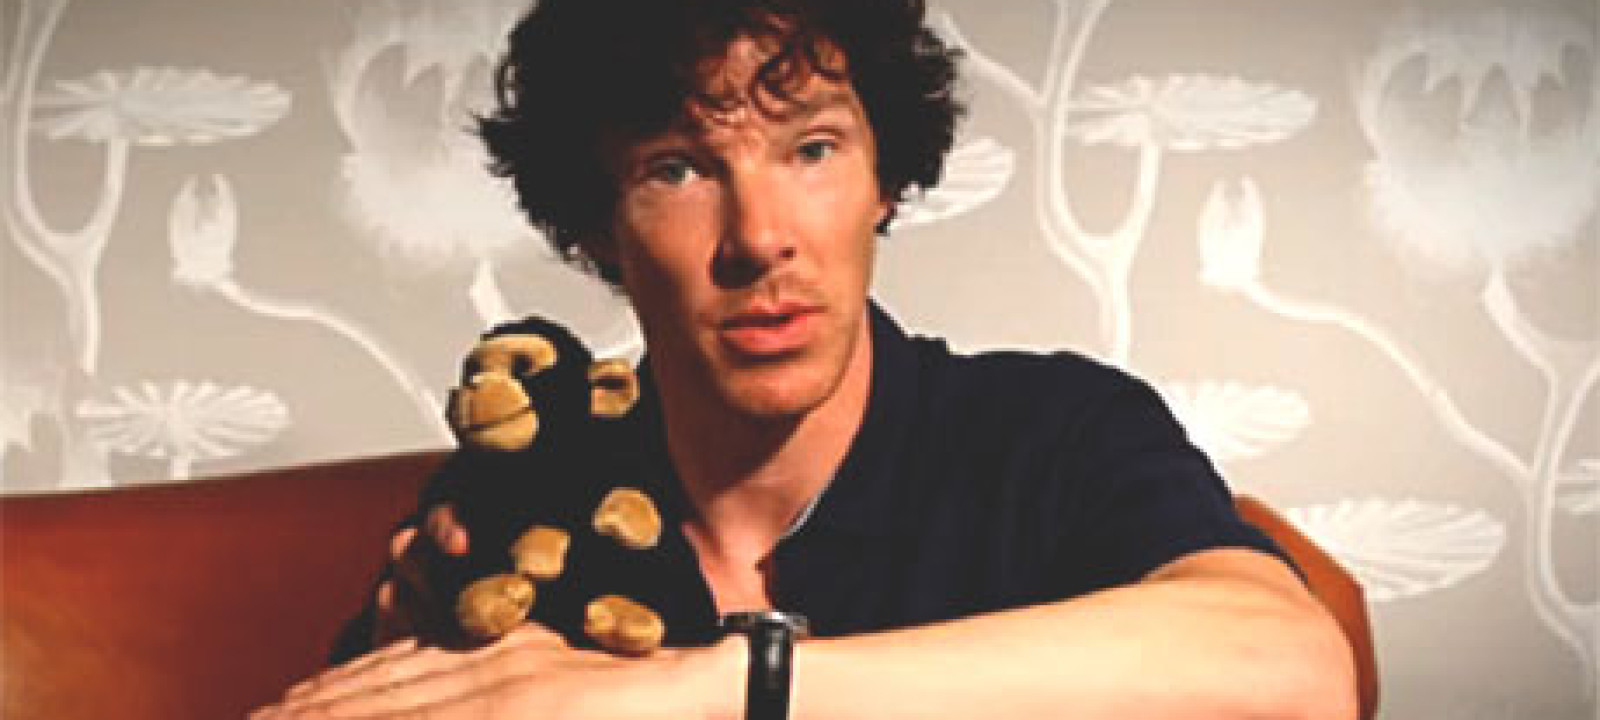 Benedict Cumberbatch and friend